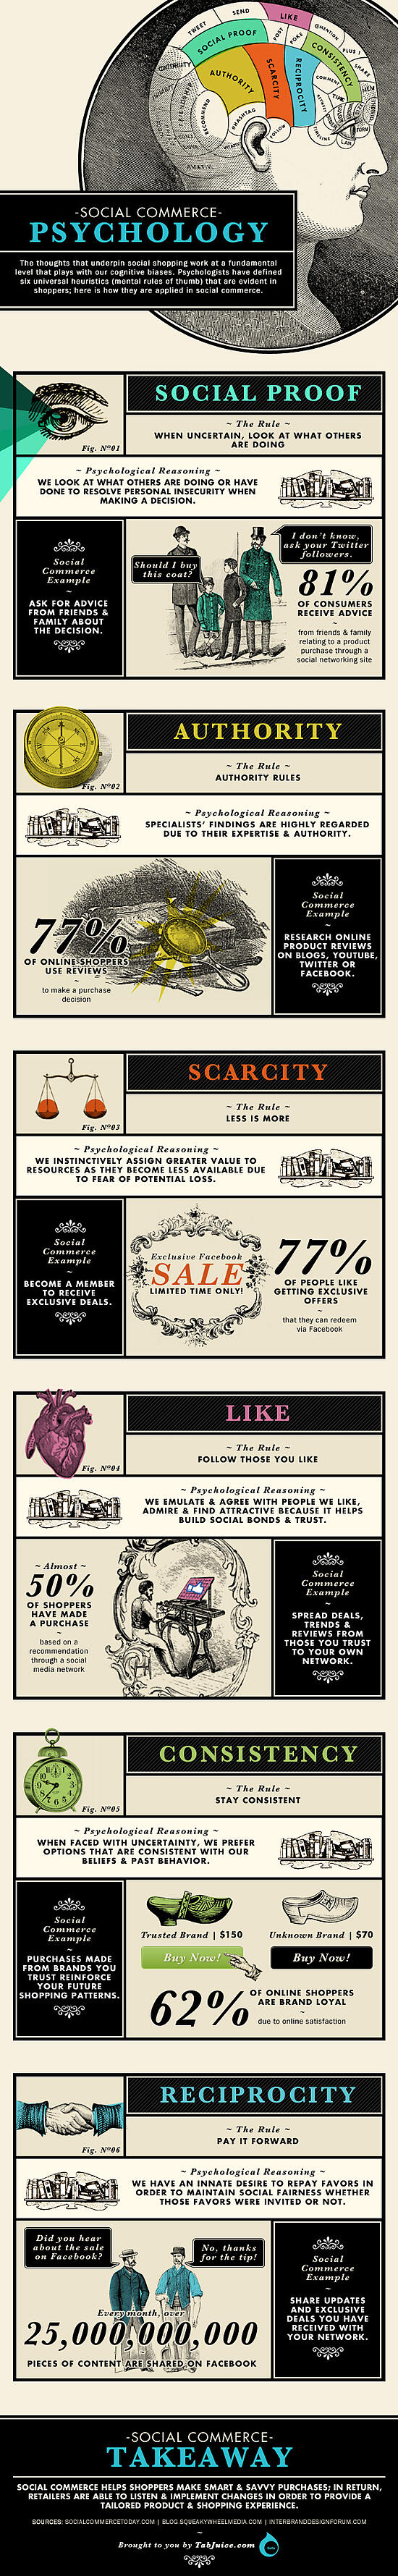 The Psychology of Social Commerce Infographic